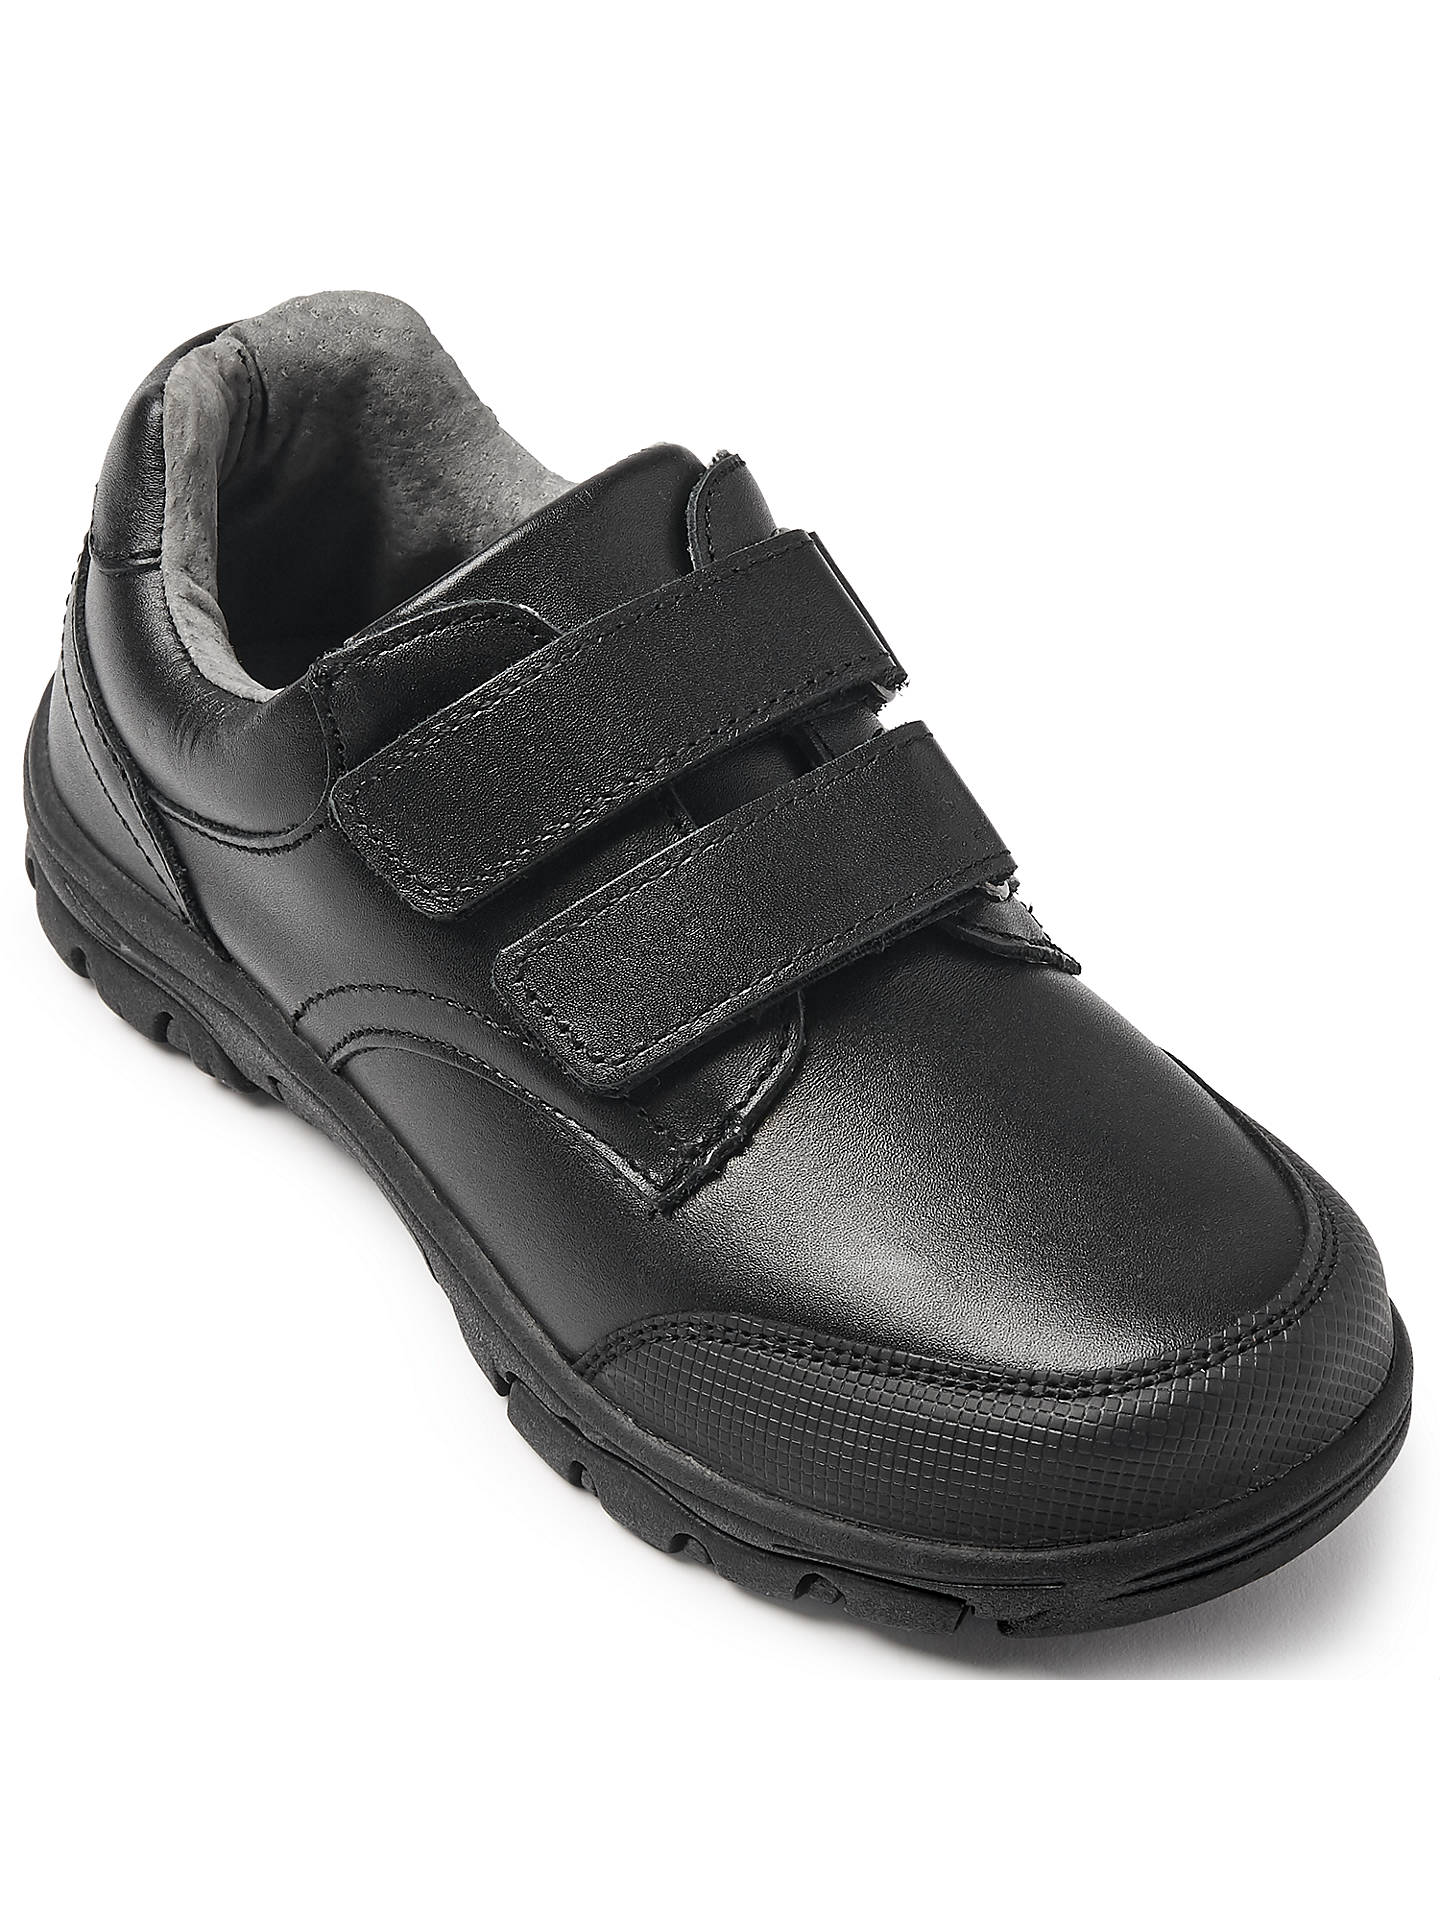 Buy John Lewis & Partners Children's Cumbria Double Riptape Shoes, Black, 10W Online at johnlewis.com